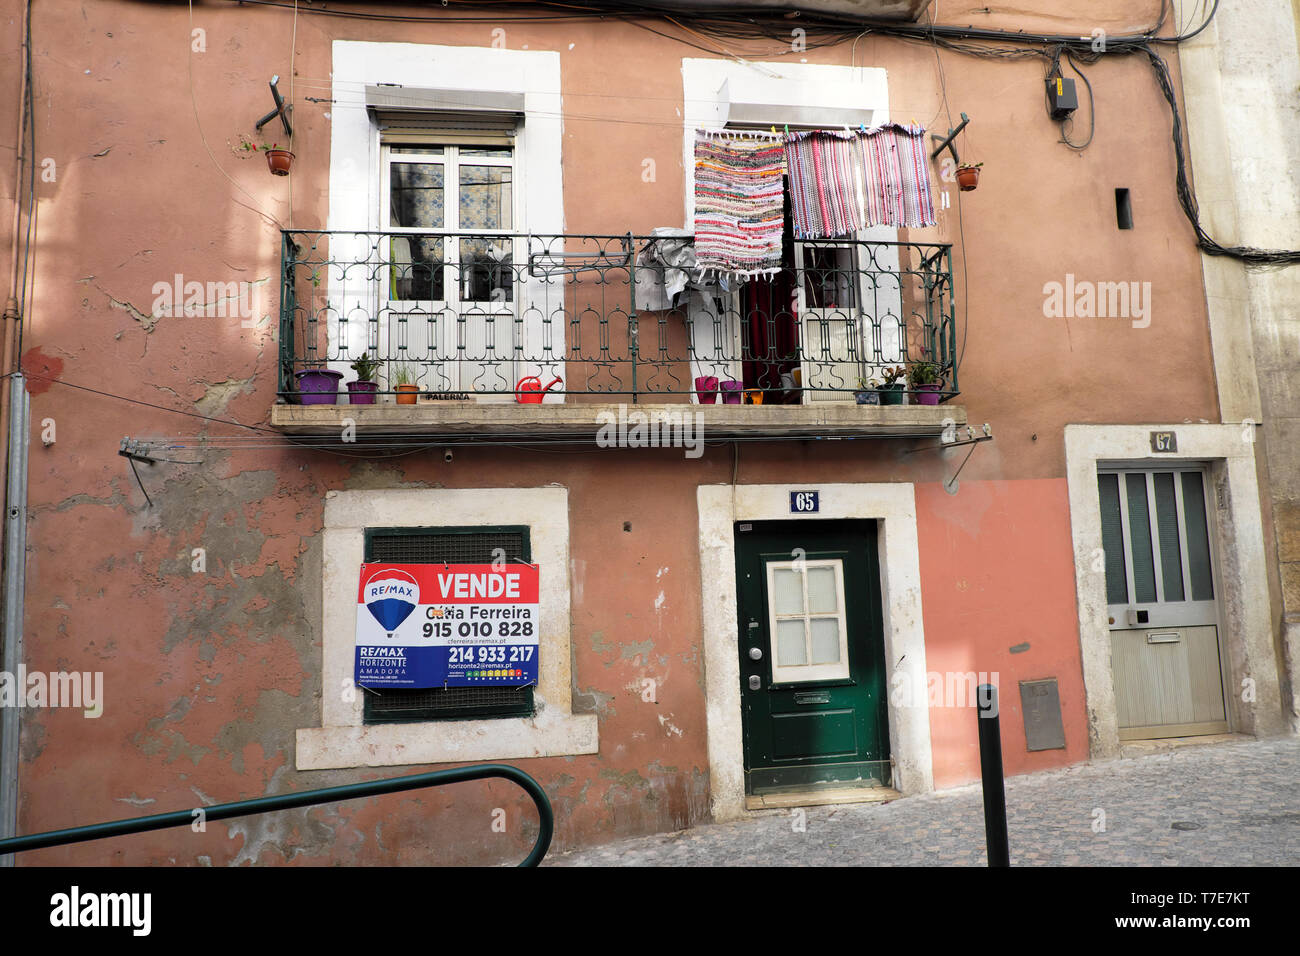 Exterior view of a for sale vende sign on a traditional house in old town with laundry outside Alfama Lisbon Portugal Europe EU  KATHY DEWITT - Stock Image